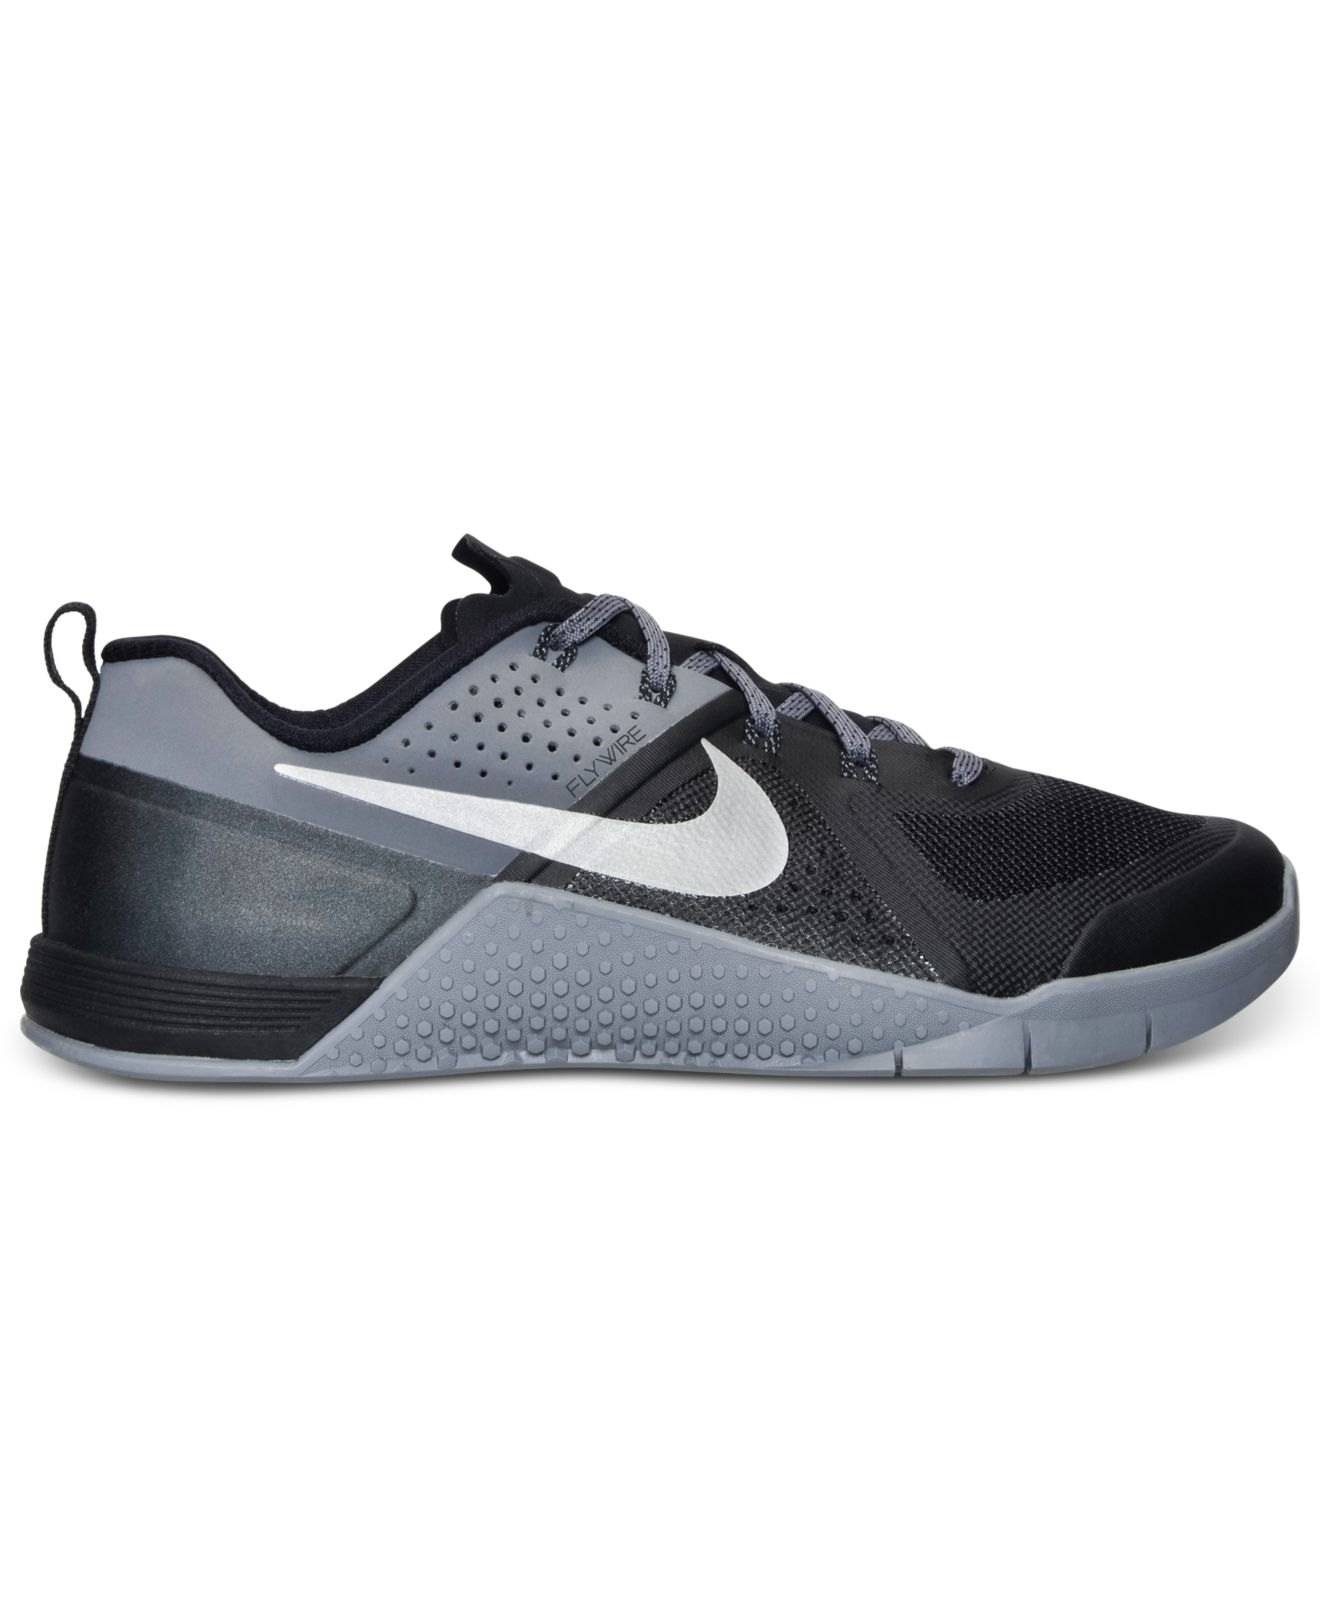 23237c1e29fe22 Lyst - Nike Men s Metcon 1 Training Sneakers From Finish Line in ...